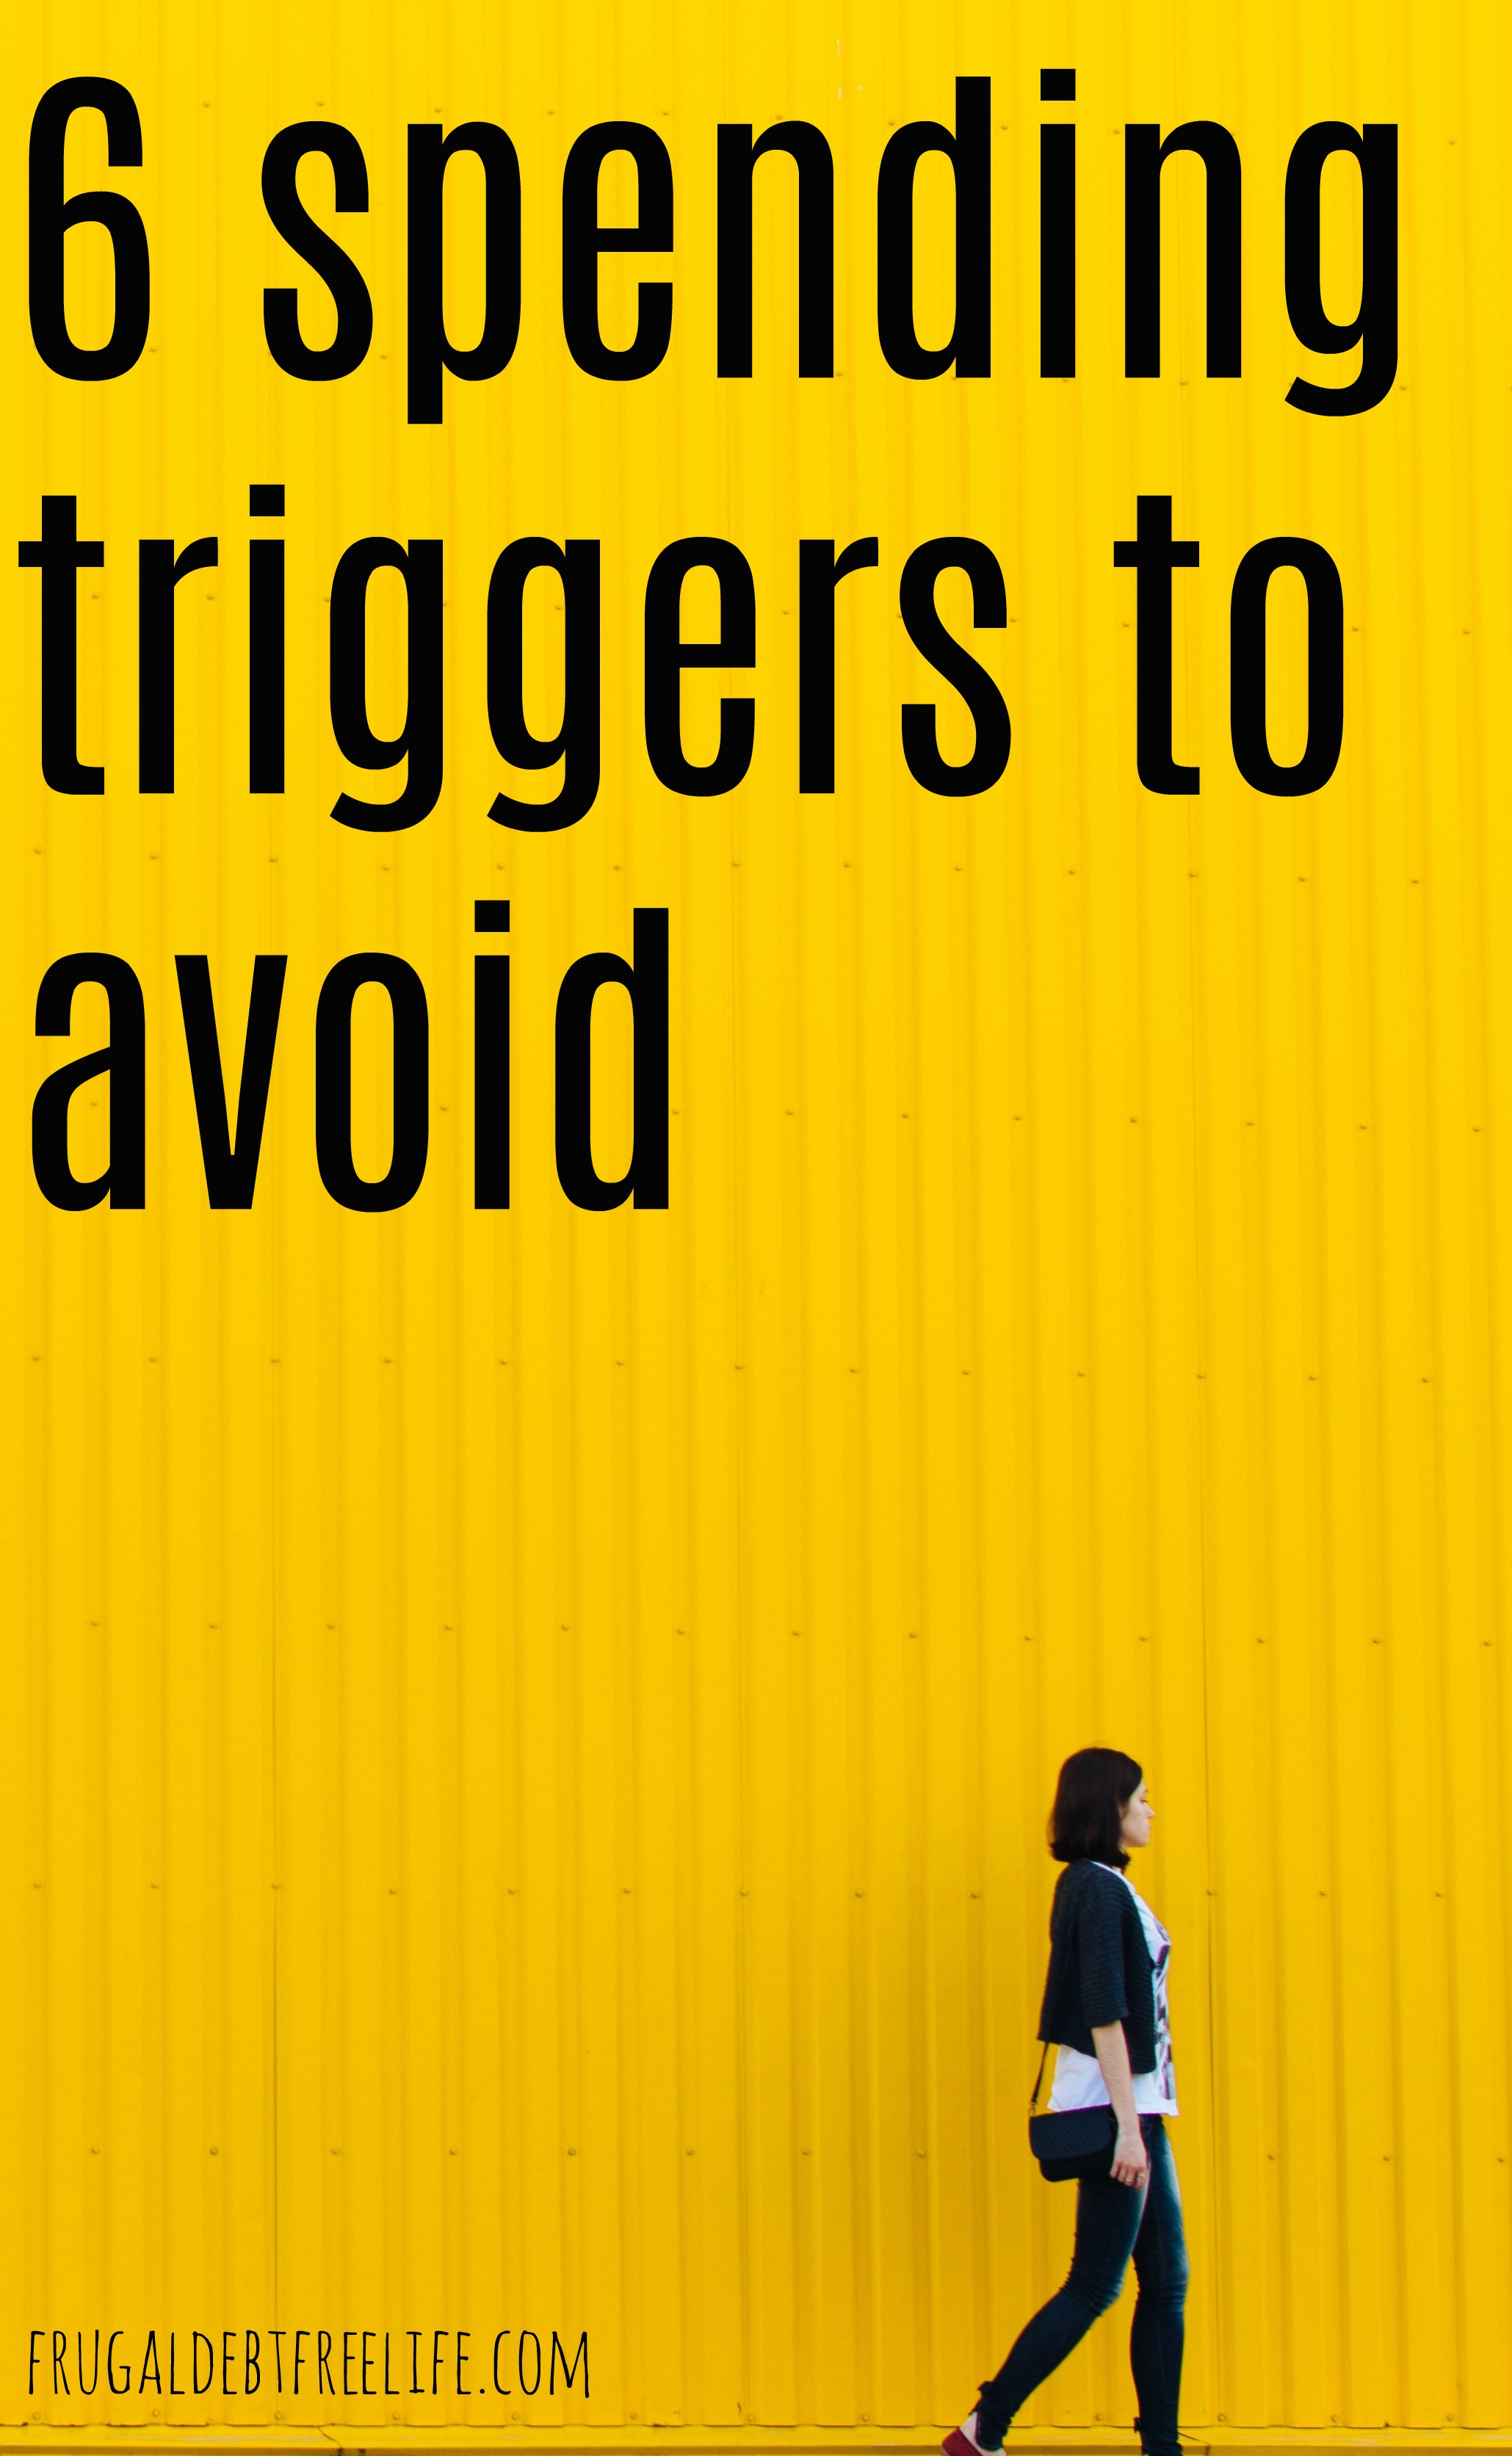 six spending triggers to avoid.jpg